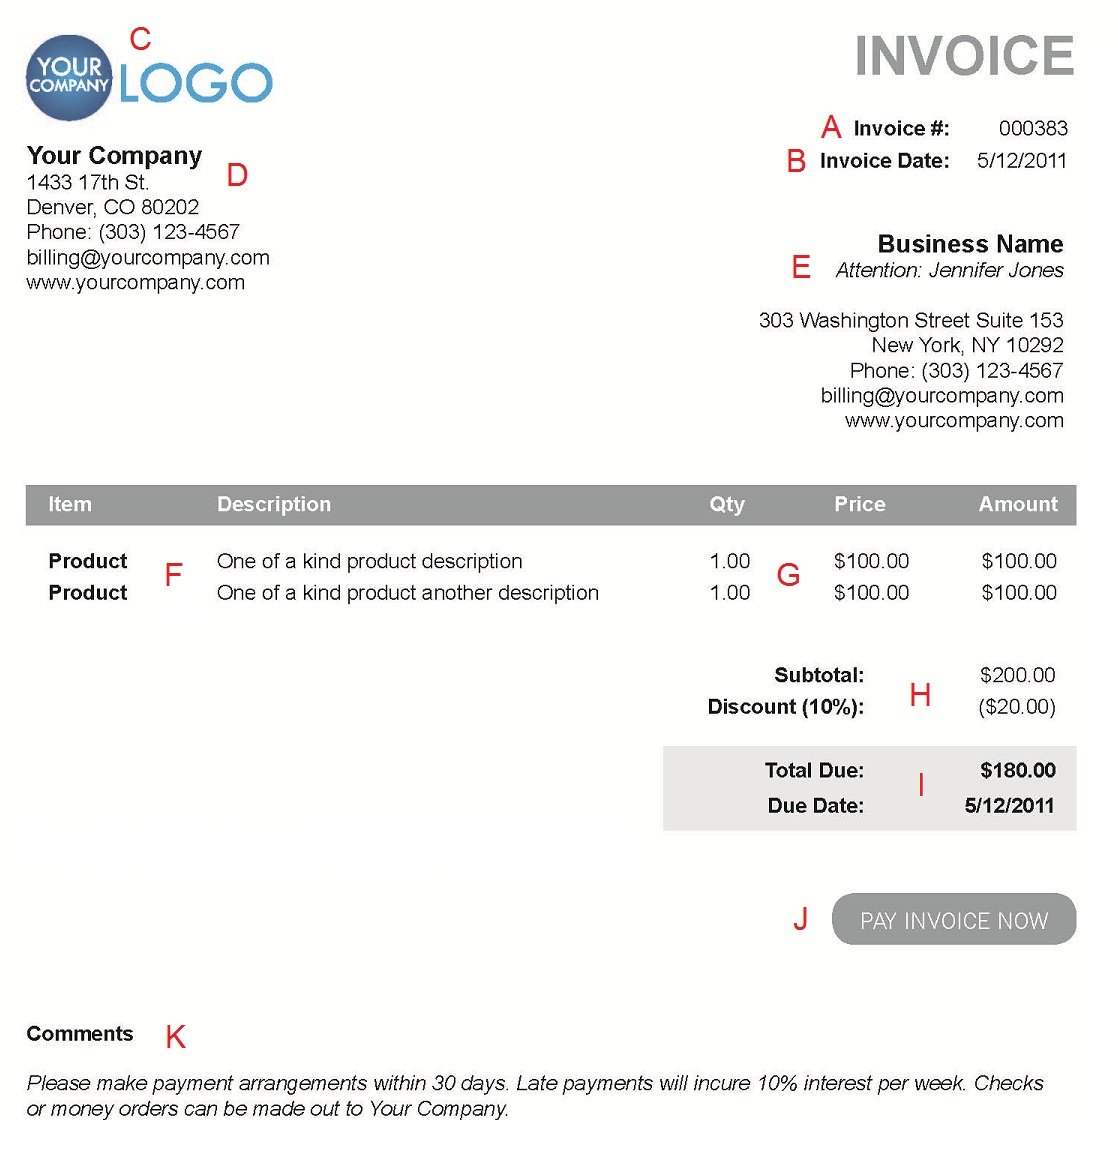 Usdgus  Remarkable The  Different Sections Of An Electronic Payment Invoice With Goodlooking A  With Easy On The Eye Bmw X Invoice Price Also Online Business Suite Invoicing Services In Addition Sample Handyman Invoice And Sample Construction Invoice Template As Well As Template Of Invoice In Word Additionally Medical Invoice Template Free From Paysimplecom With Usdgus  Goodlooking The  Different Sections Of An Electronic Payment Invoice With Easy On The Eye A  And Remarkable Bmw X Invoice Price Also Online Business Suite Invoicing Services In Addition Sample Handyman Invoice From Paysimplecom